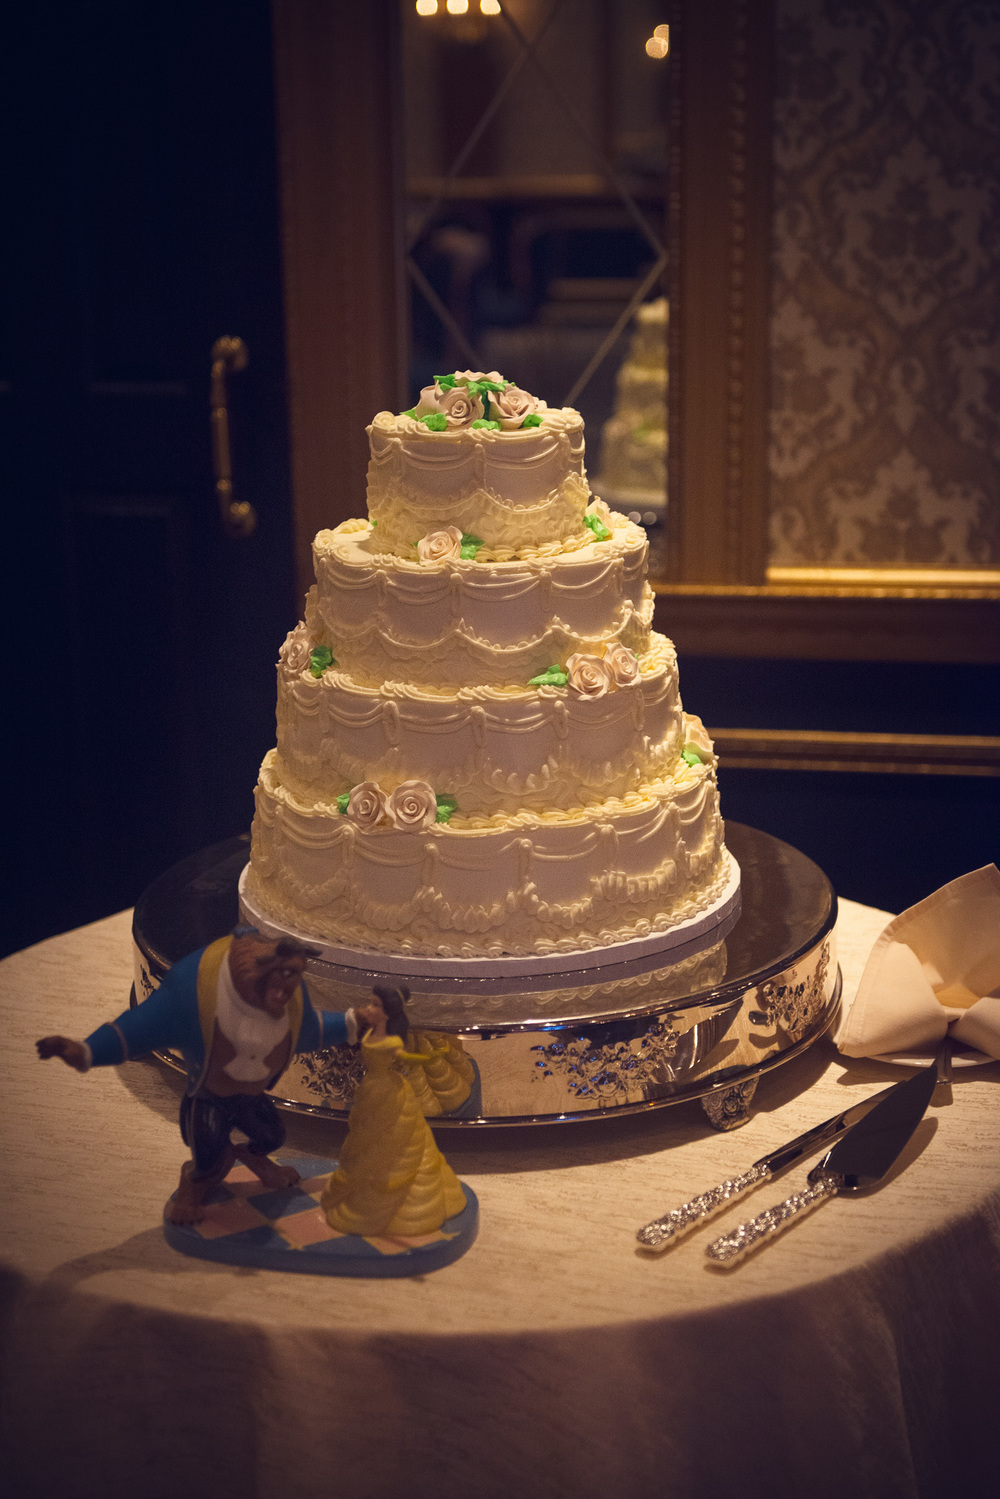 Beauty and the Beast cake Disney